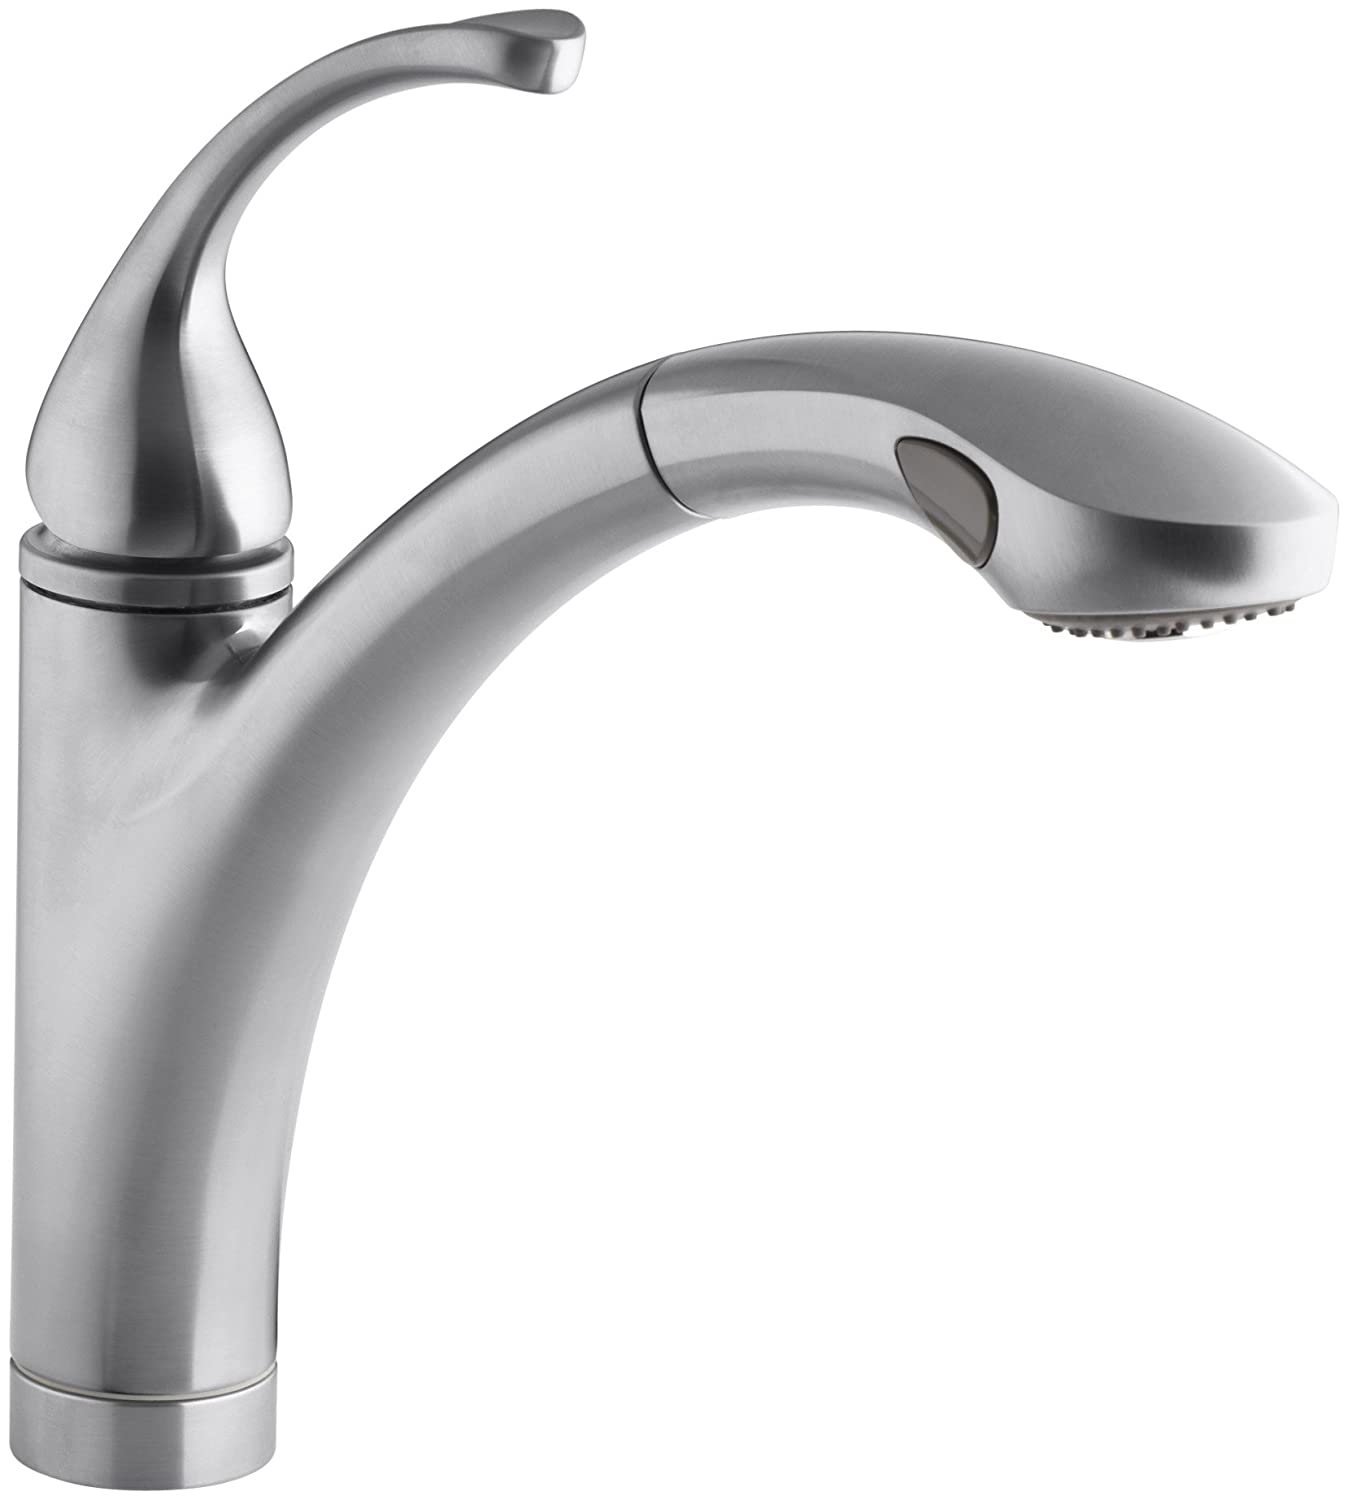 KOHLER K-10433-G Forte Single Control Pull-out Kitchen Sink Faucet, Single Lever Handle, 1-hole or 3-hole installation, Brushed Chrome, 2-function Spray Head